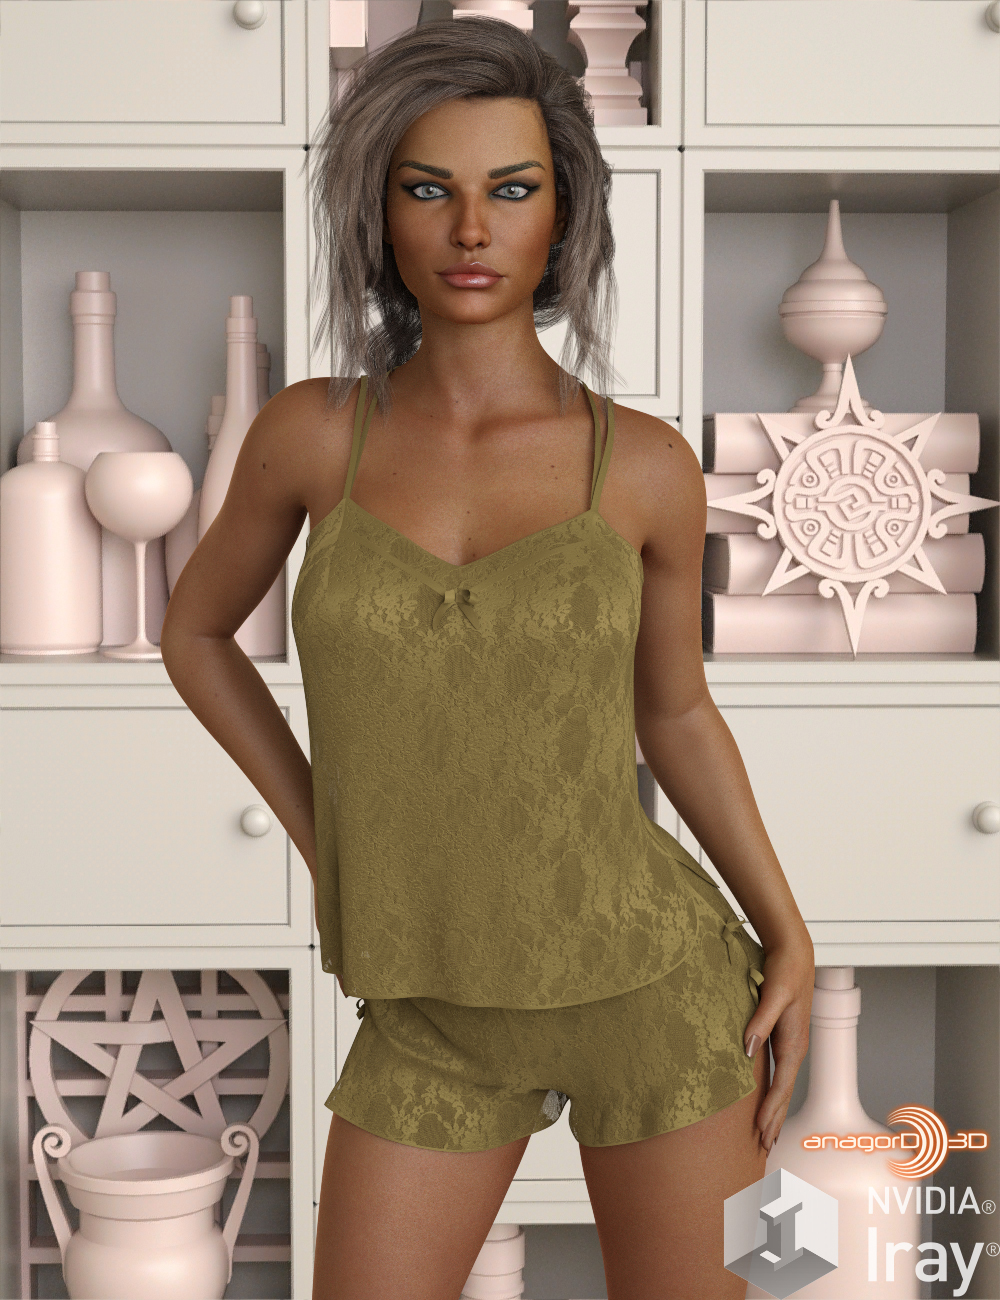 VERSUS - dForce Sexy Silk PJs With Lace for Genesis 8 Female